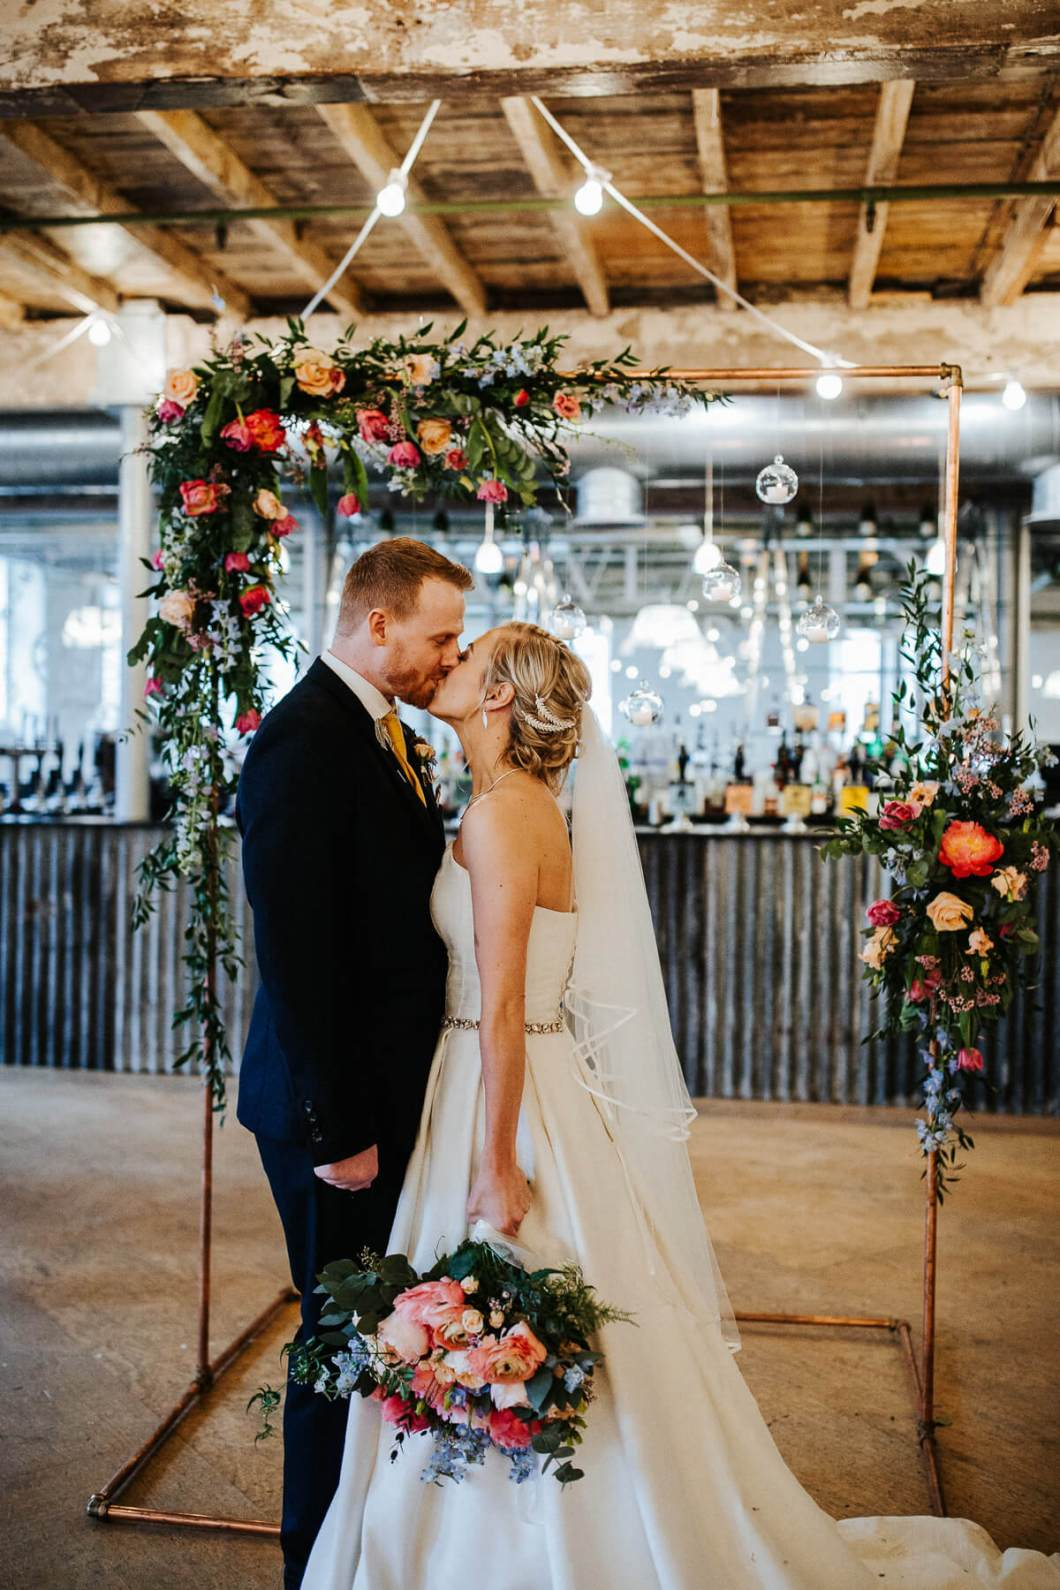 Industrial style wedding with colourful flowers